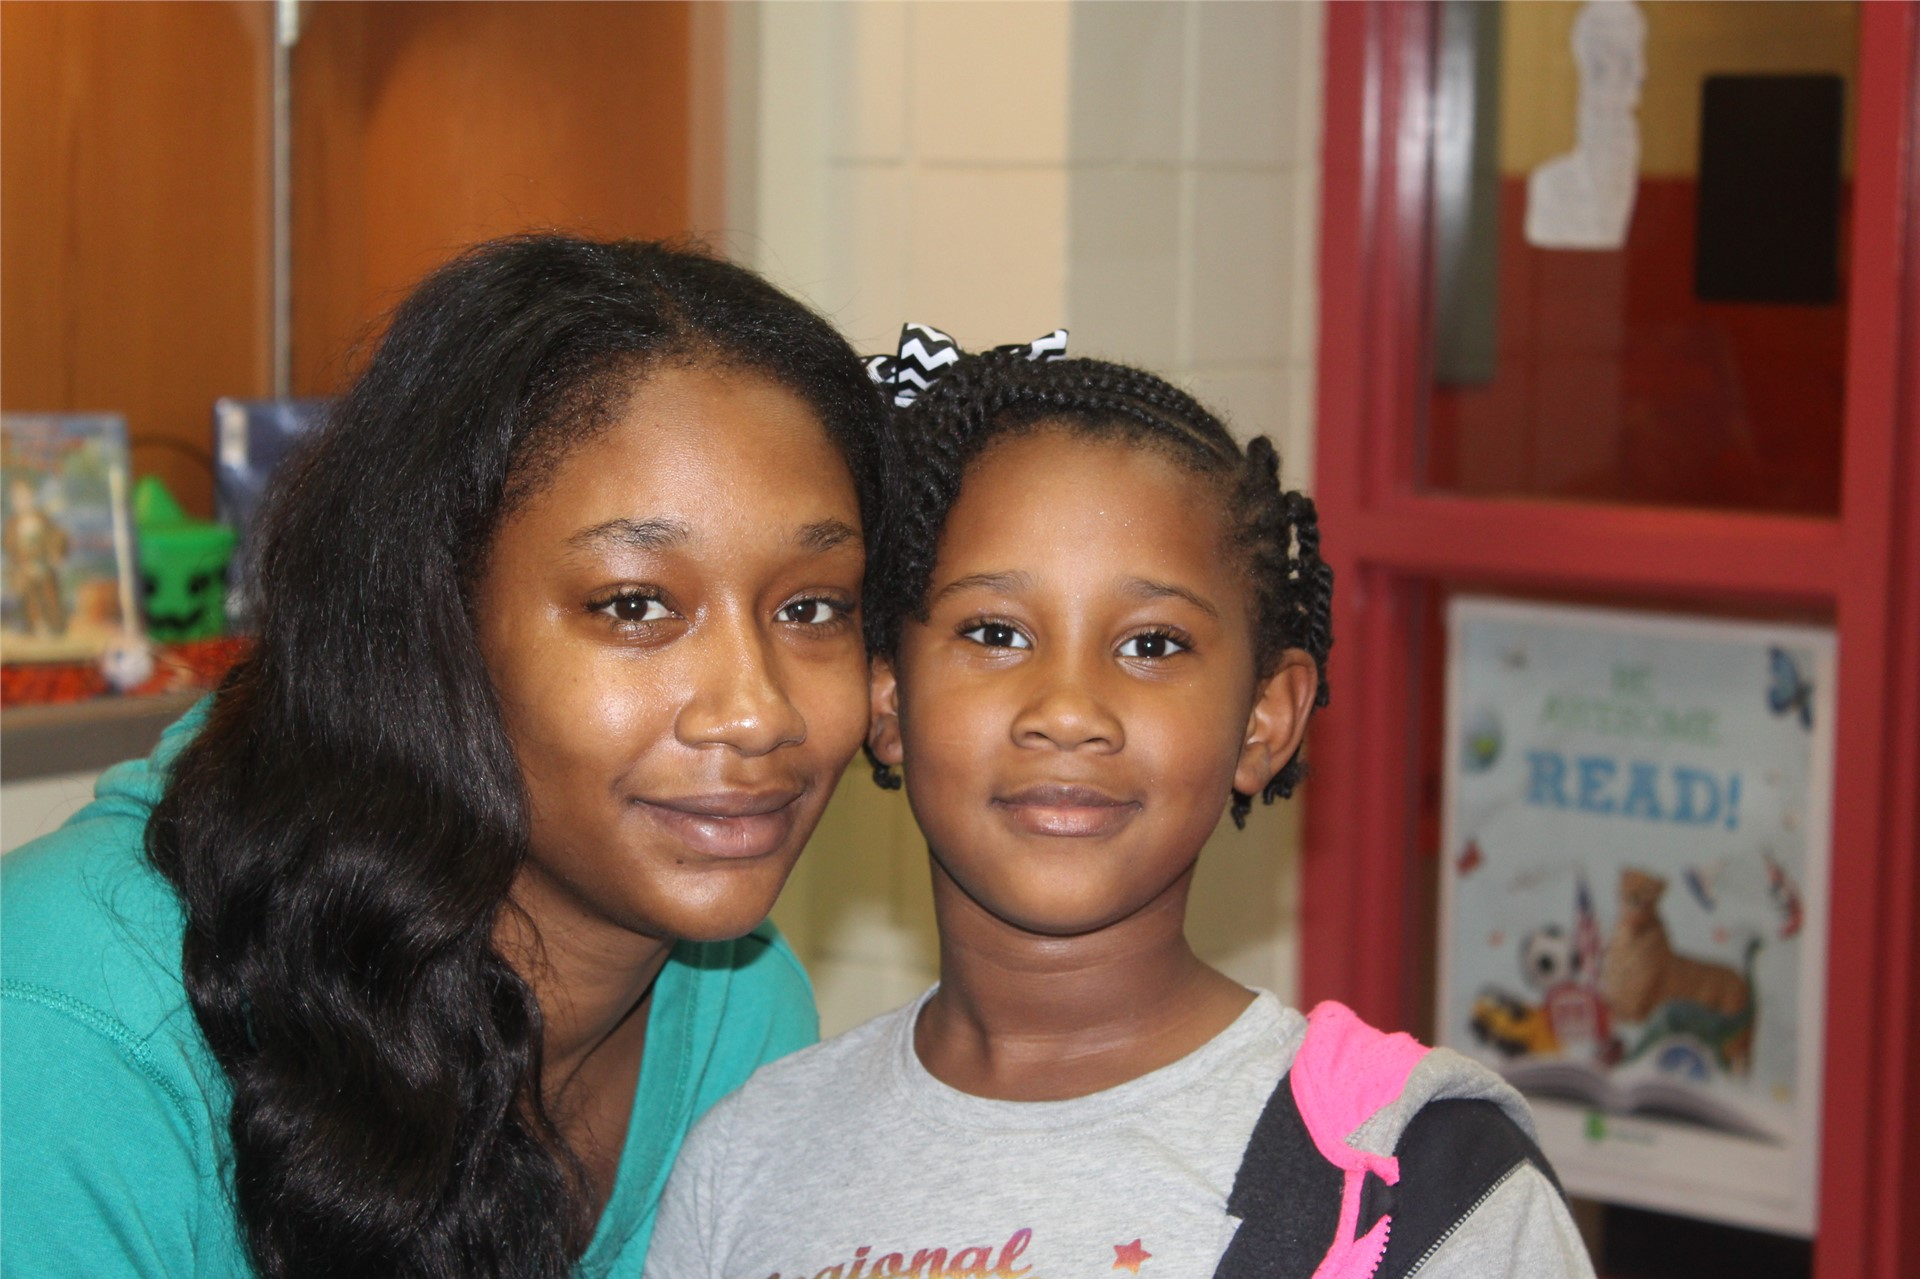 Miss Lay and her daughter came to FLN.